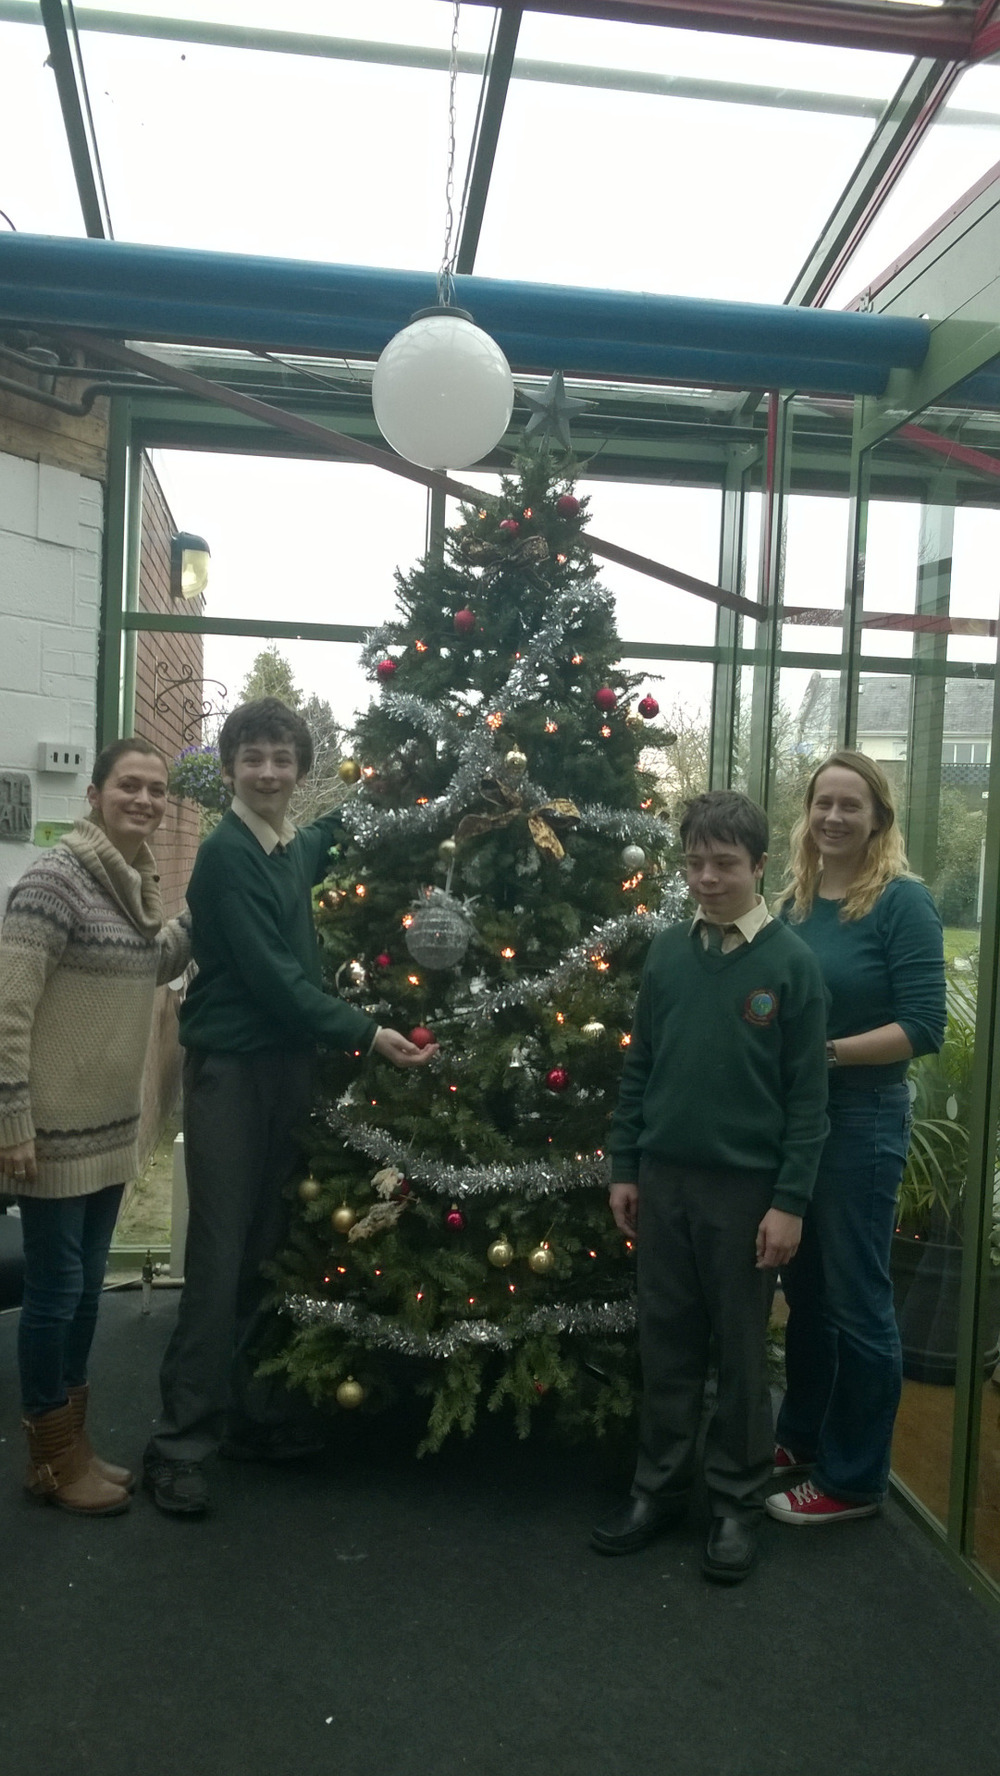 Christmas tree 2015 is now up. Well done to Luke and Adam.